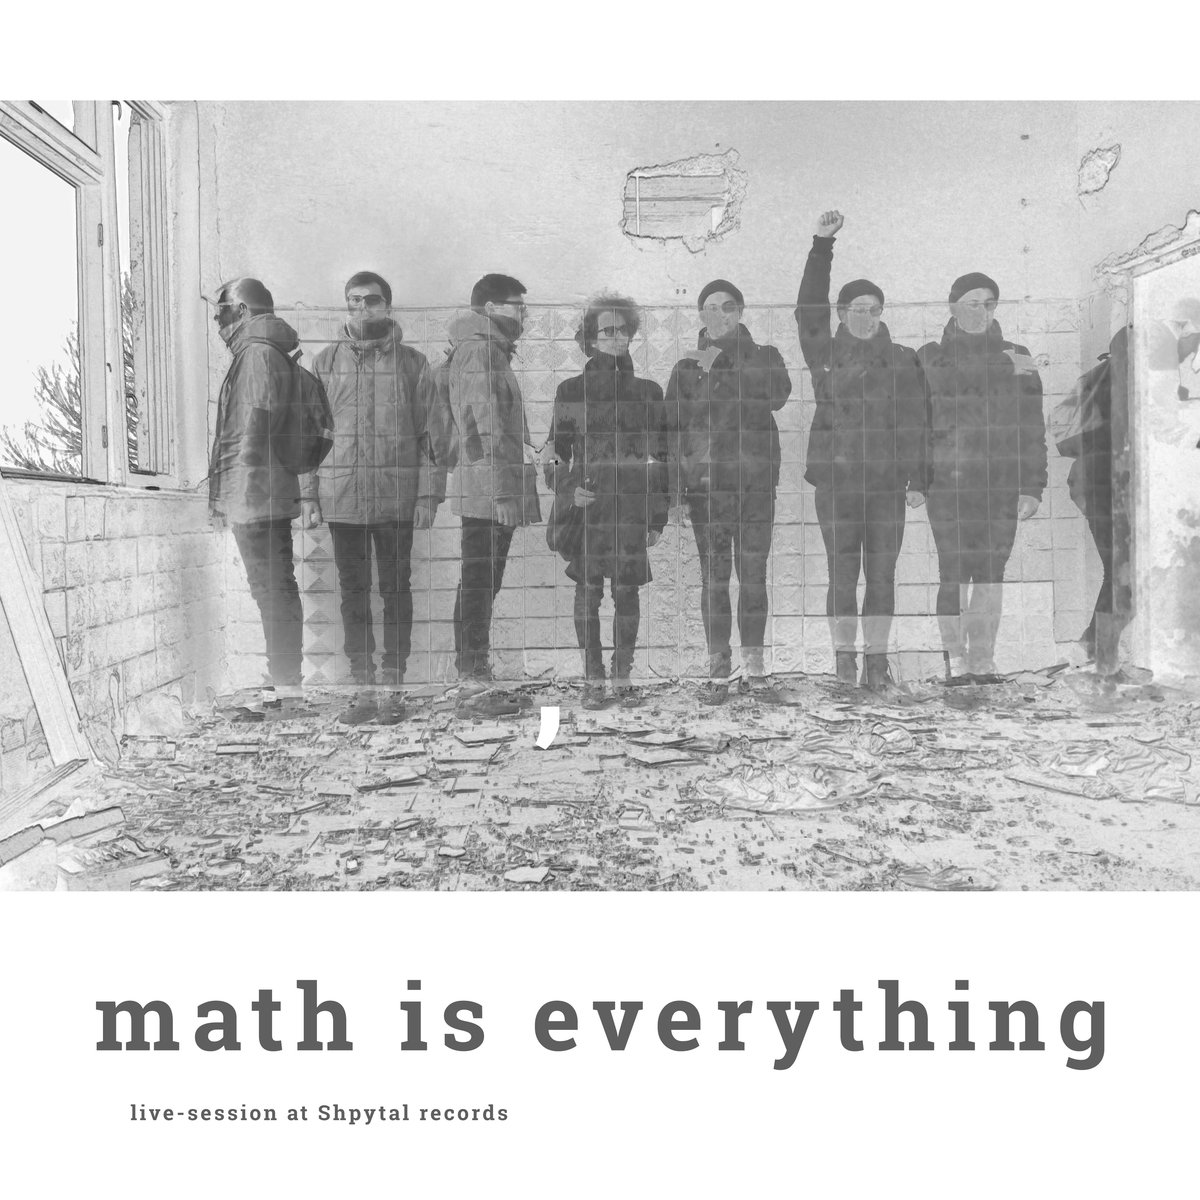 Dreadnought - Math is everything (live-session)